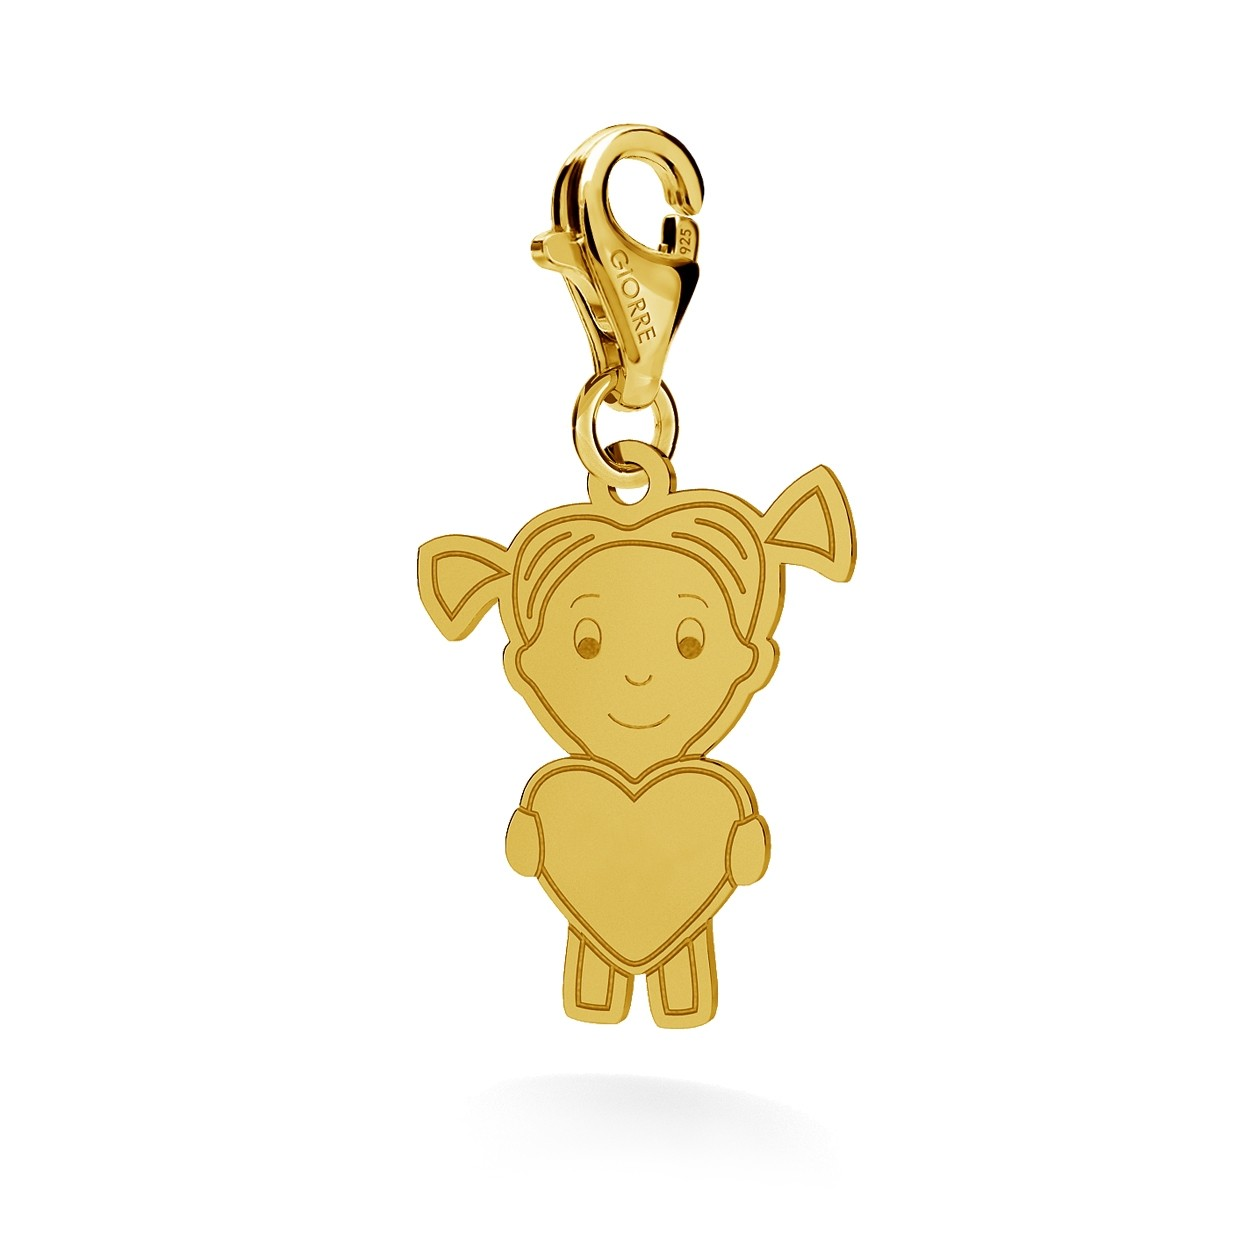 CHARM 130, GIRL OR BOY WITH ENGRAVE, STERLING SILVER (925) RHODIUM OR GOLD PLATED